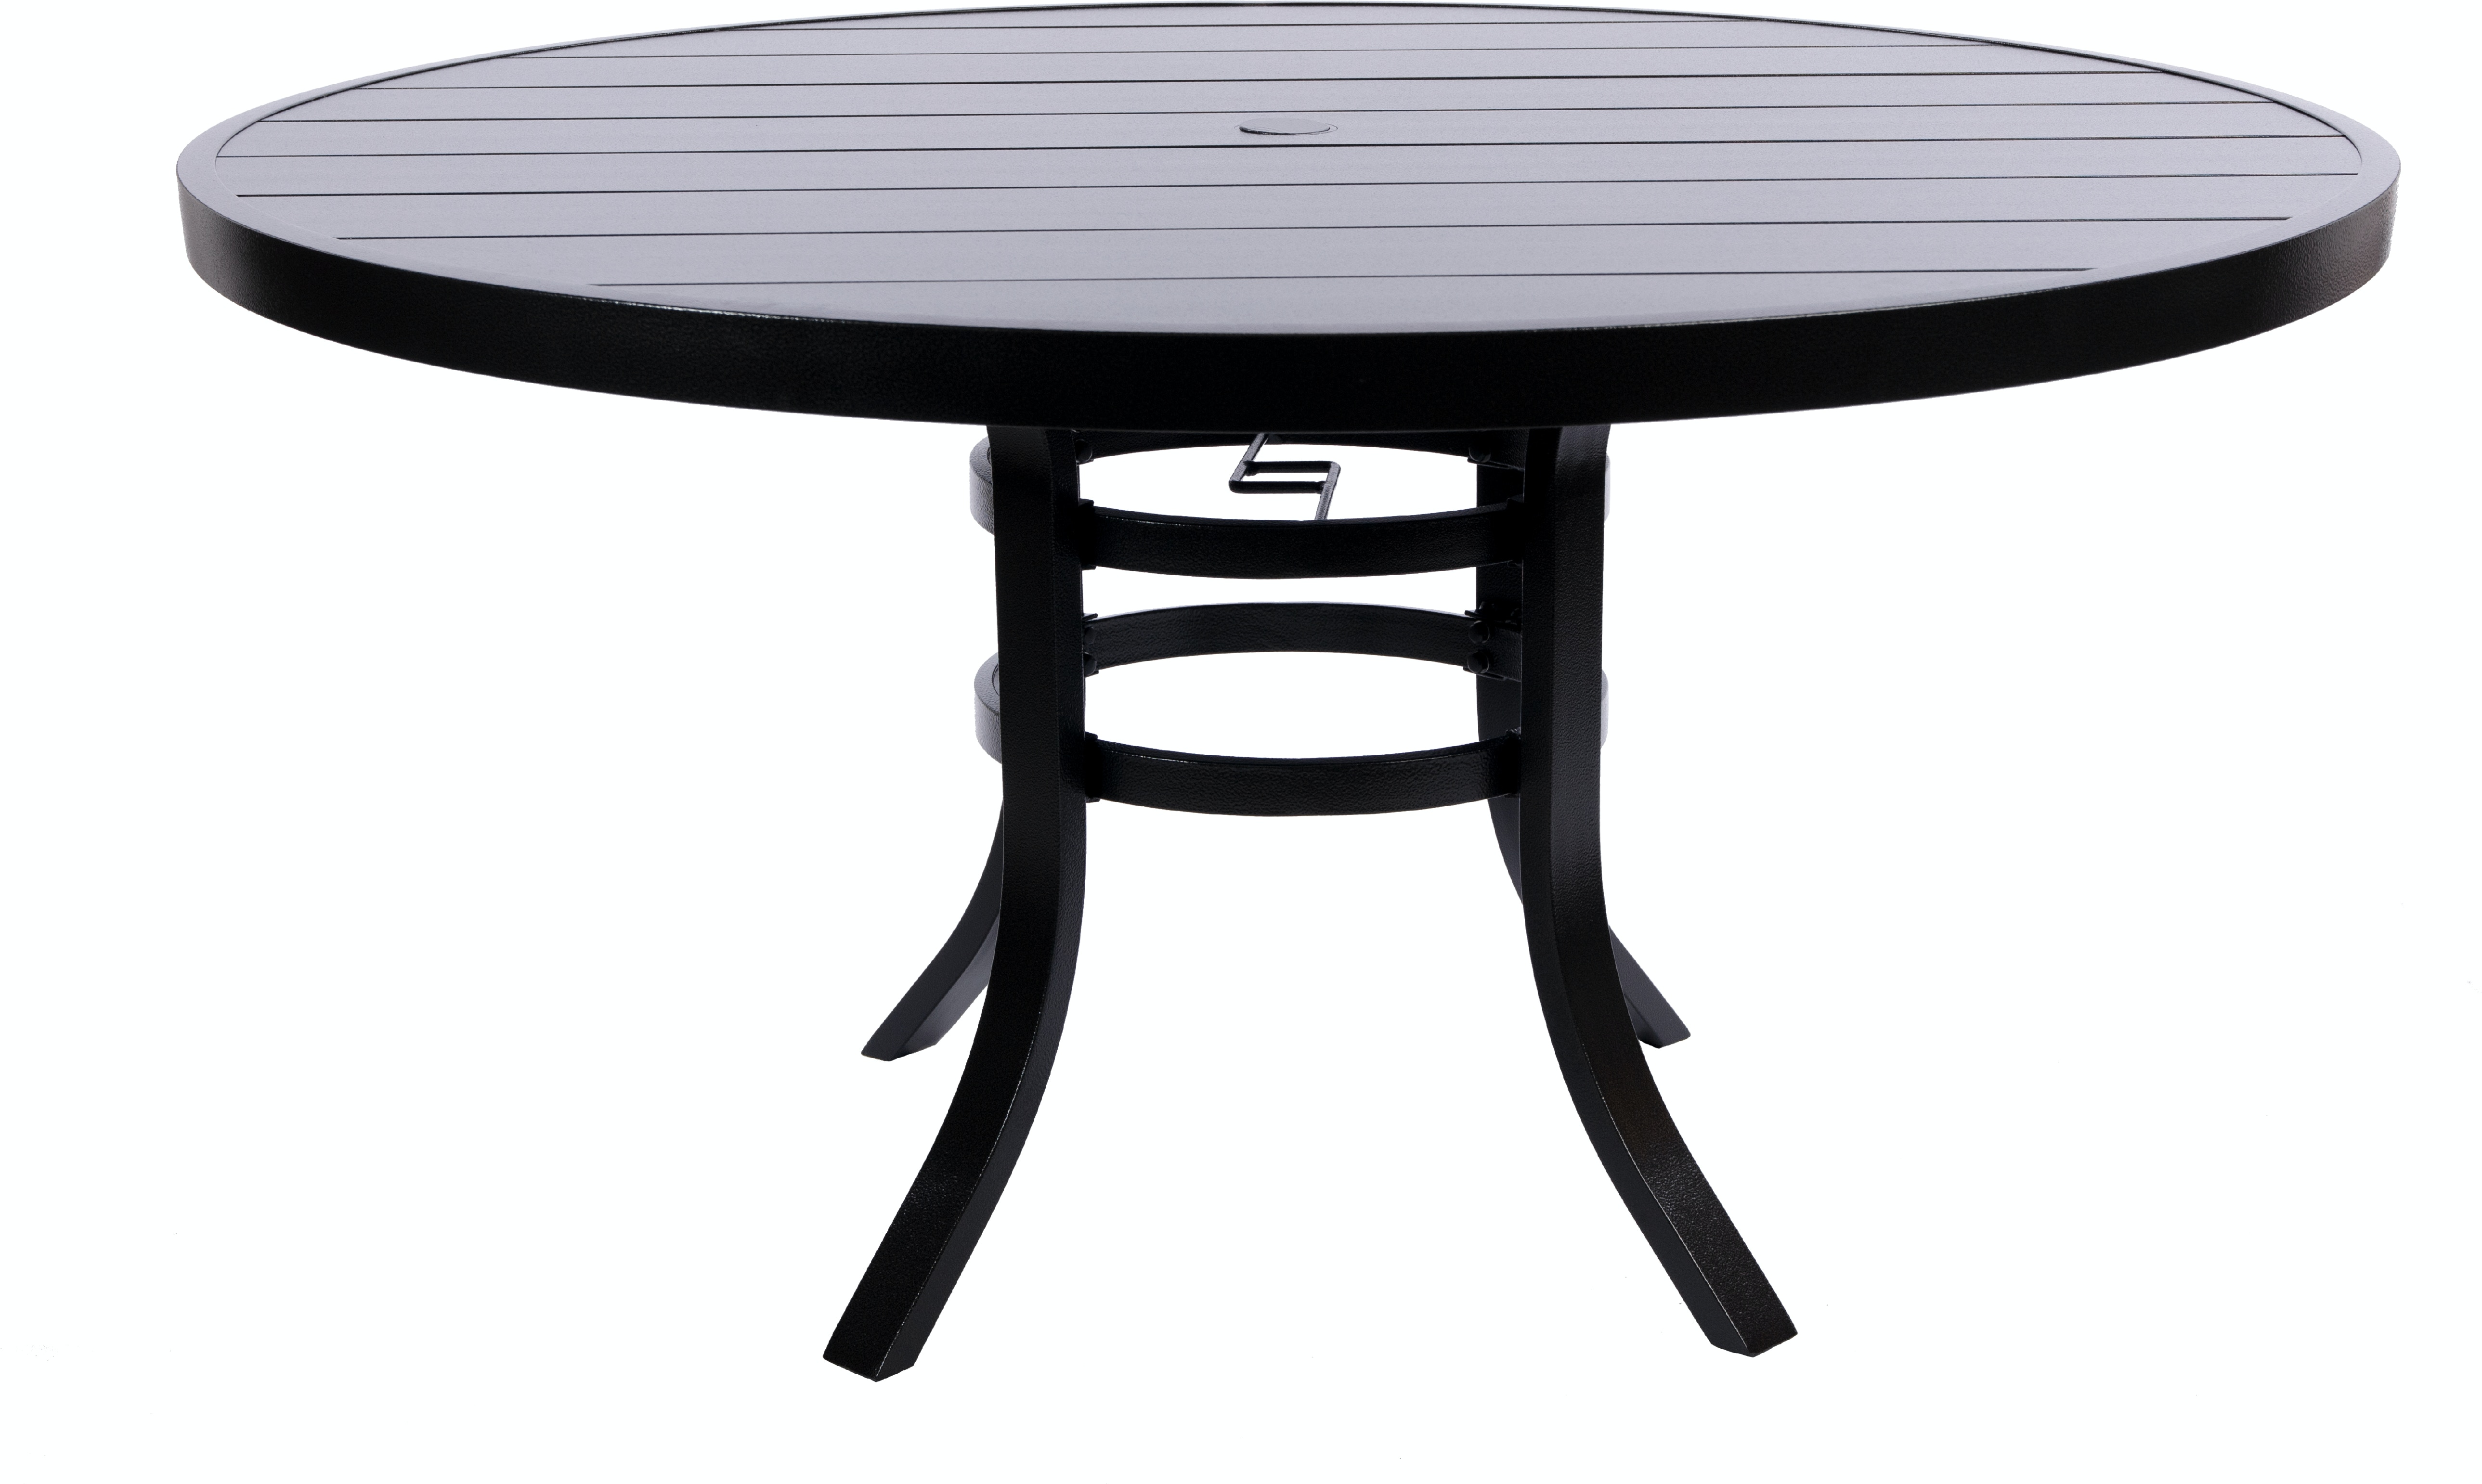 American Home Outdoor Patio 54 Inch Round Aluminum Slat Dining Table Aminis